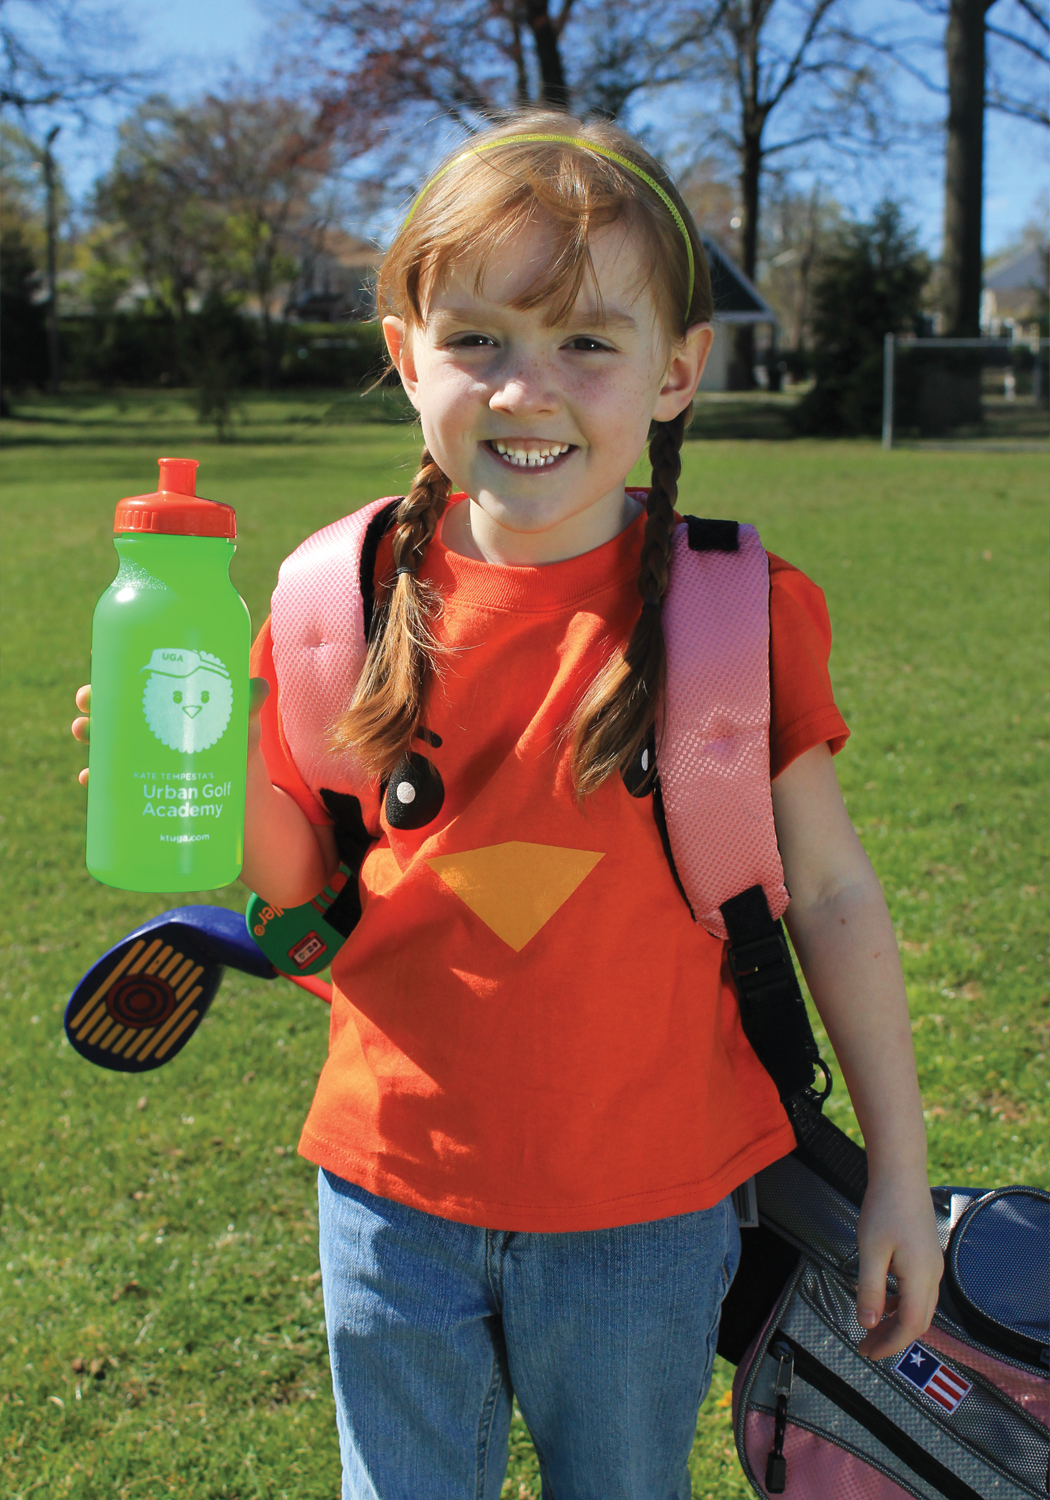 """A young girl carrying a golf bag with an Urban Golf Academy water bottle and """"birdie"""" mascot T shirt."""